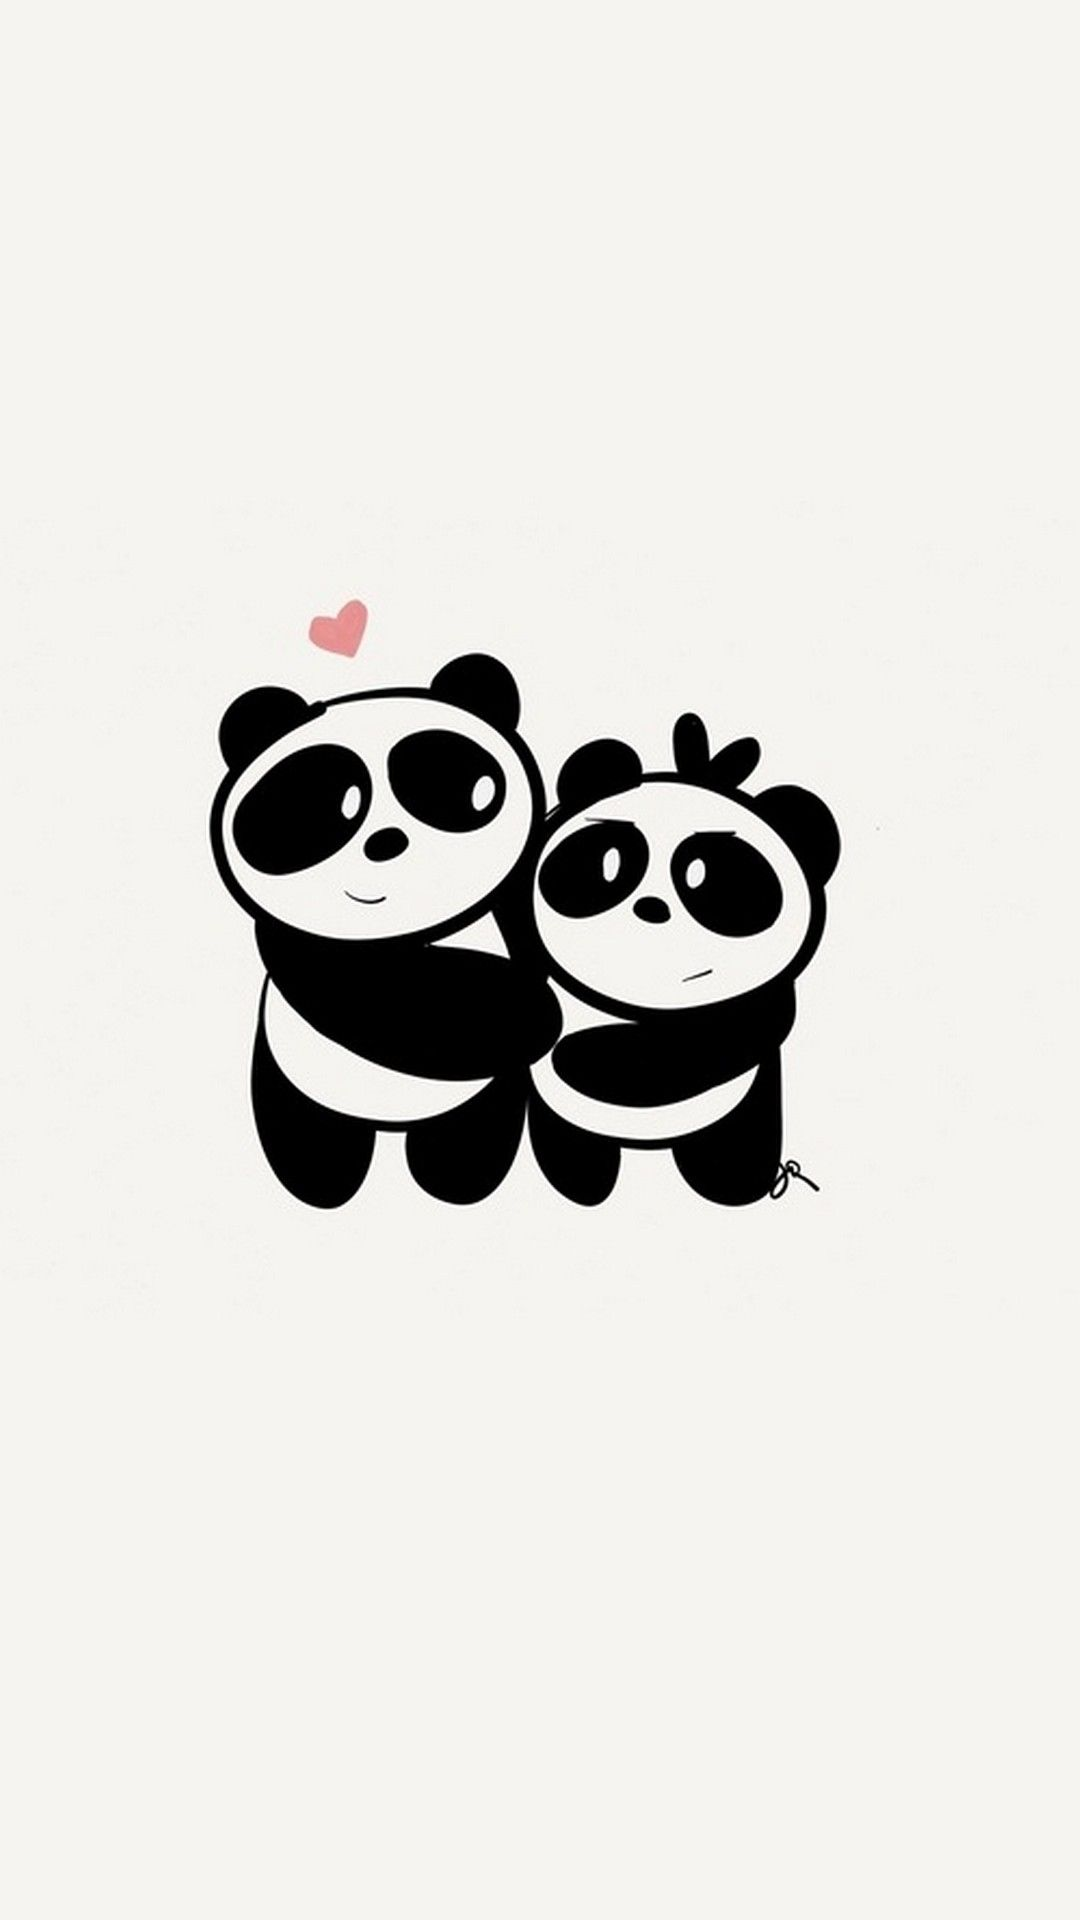 Iphone X Cute Couple Panda Wallpaper Gh Pinterest Panda